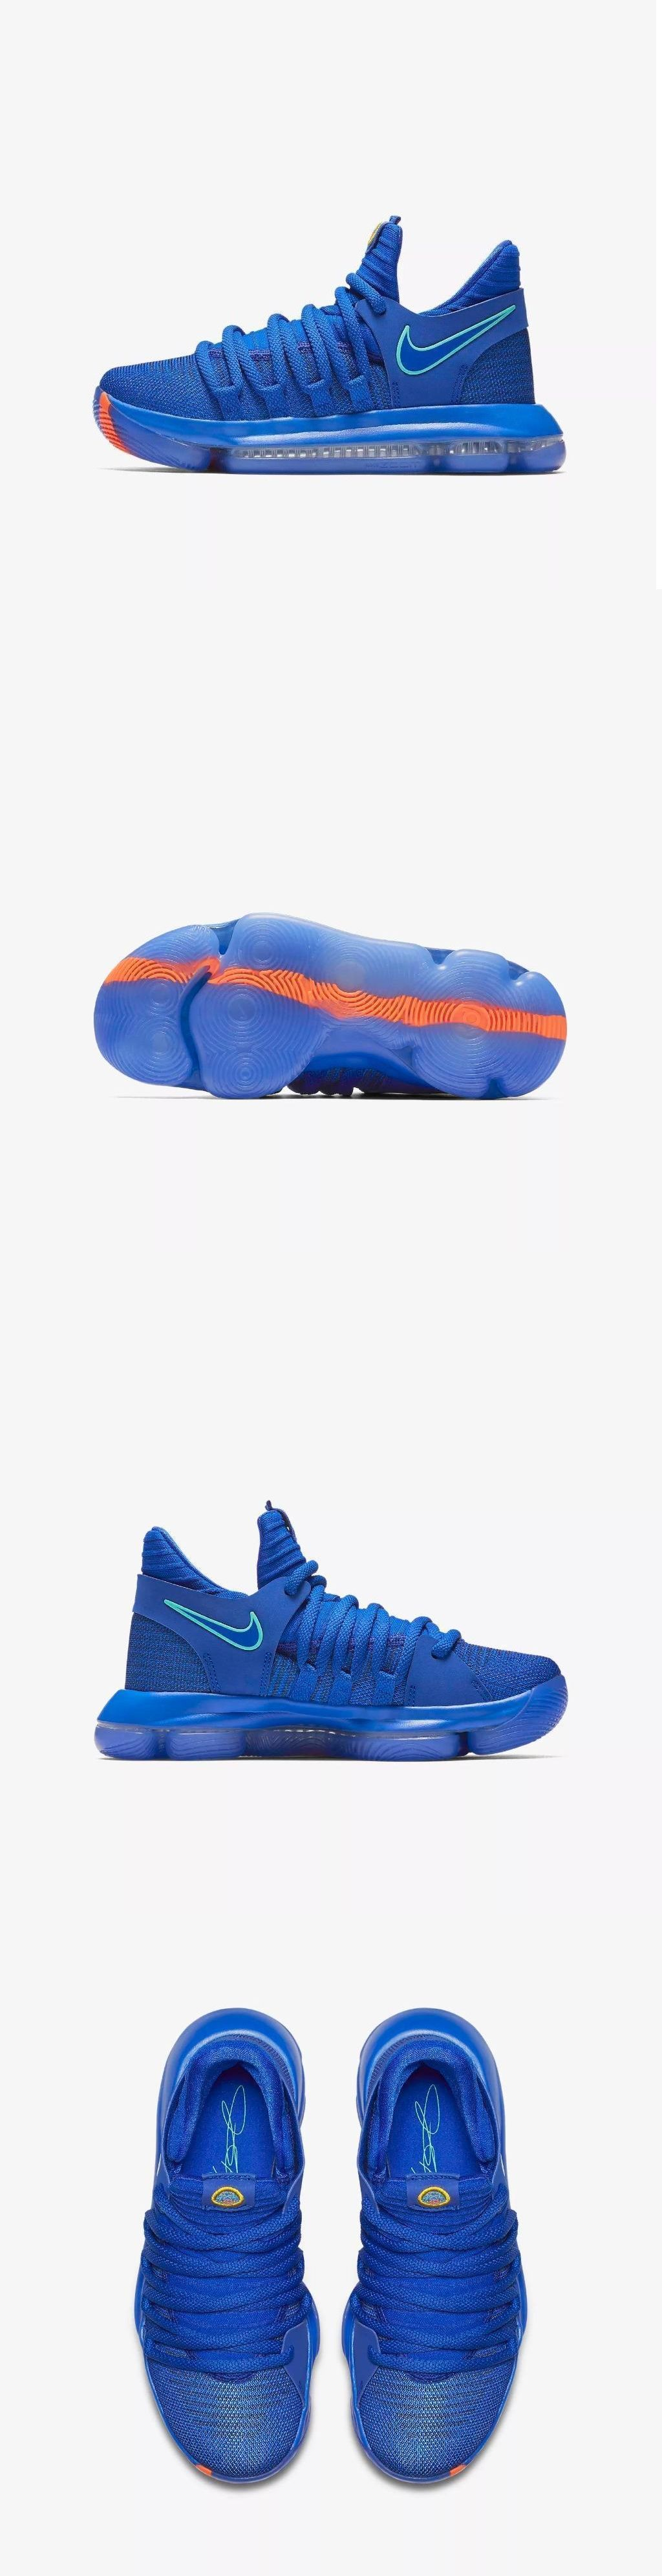 Clothing Shoes and Accessories 158963  Nike Zoom Kd10 (Gs) City Edition  918365- dbc7e2daa